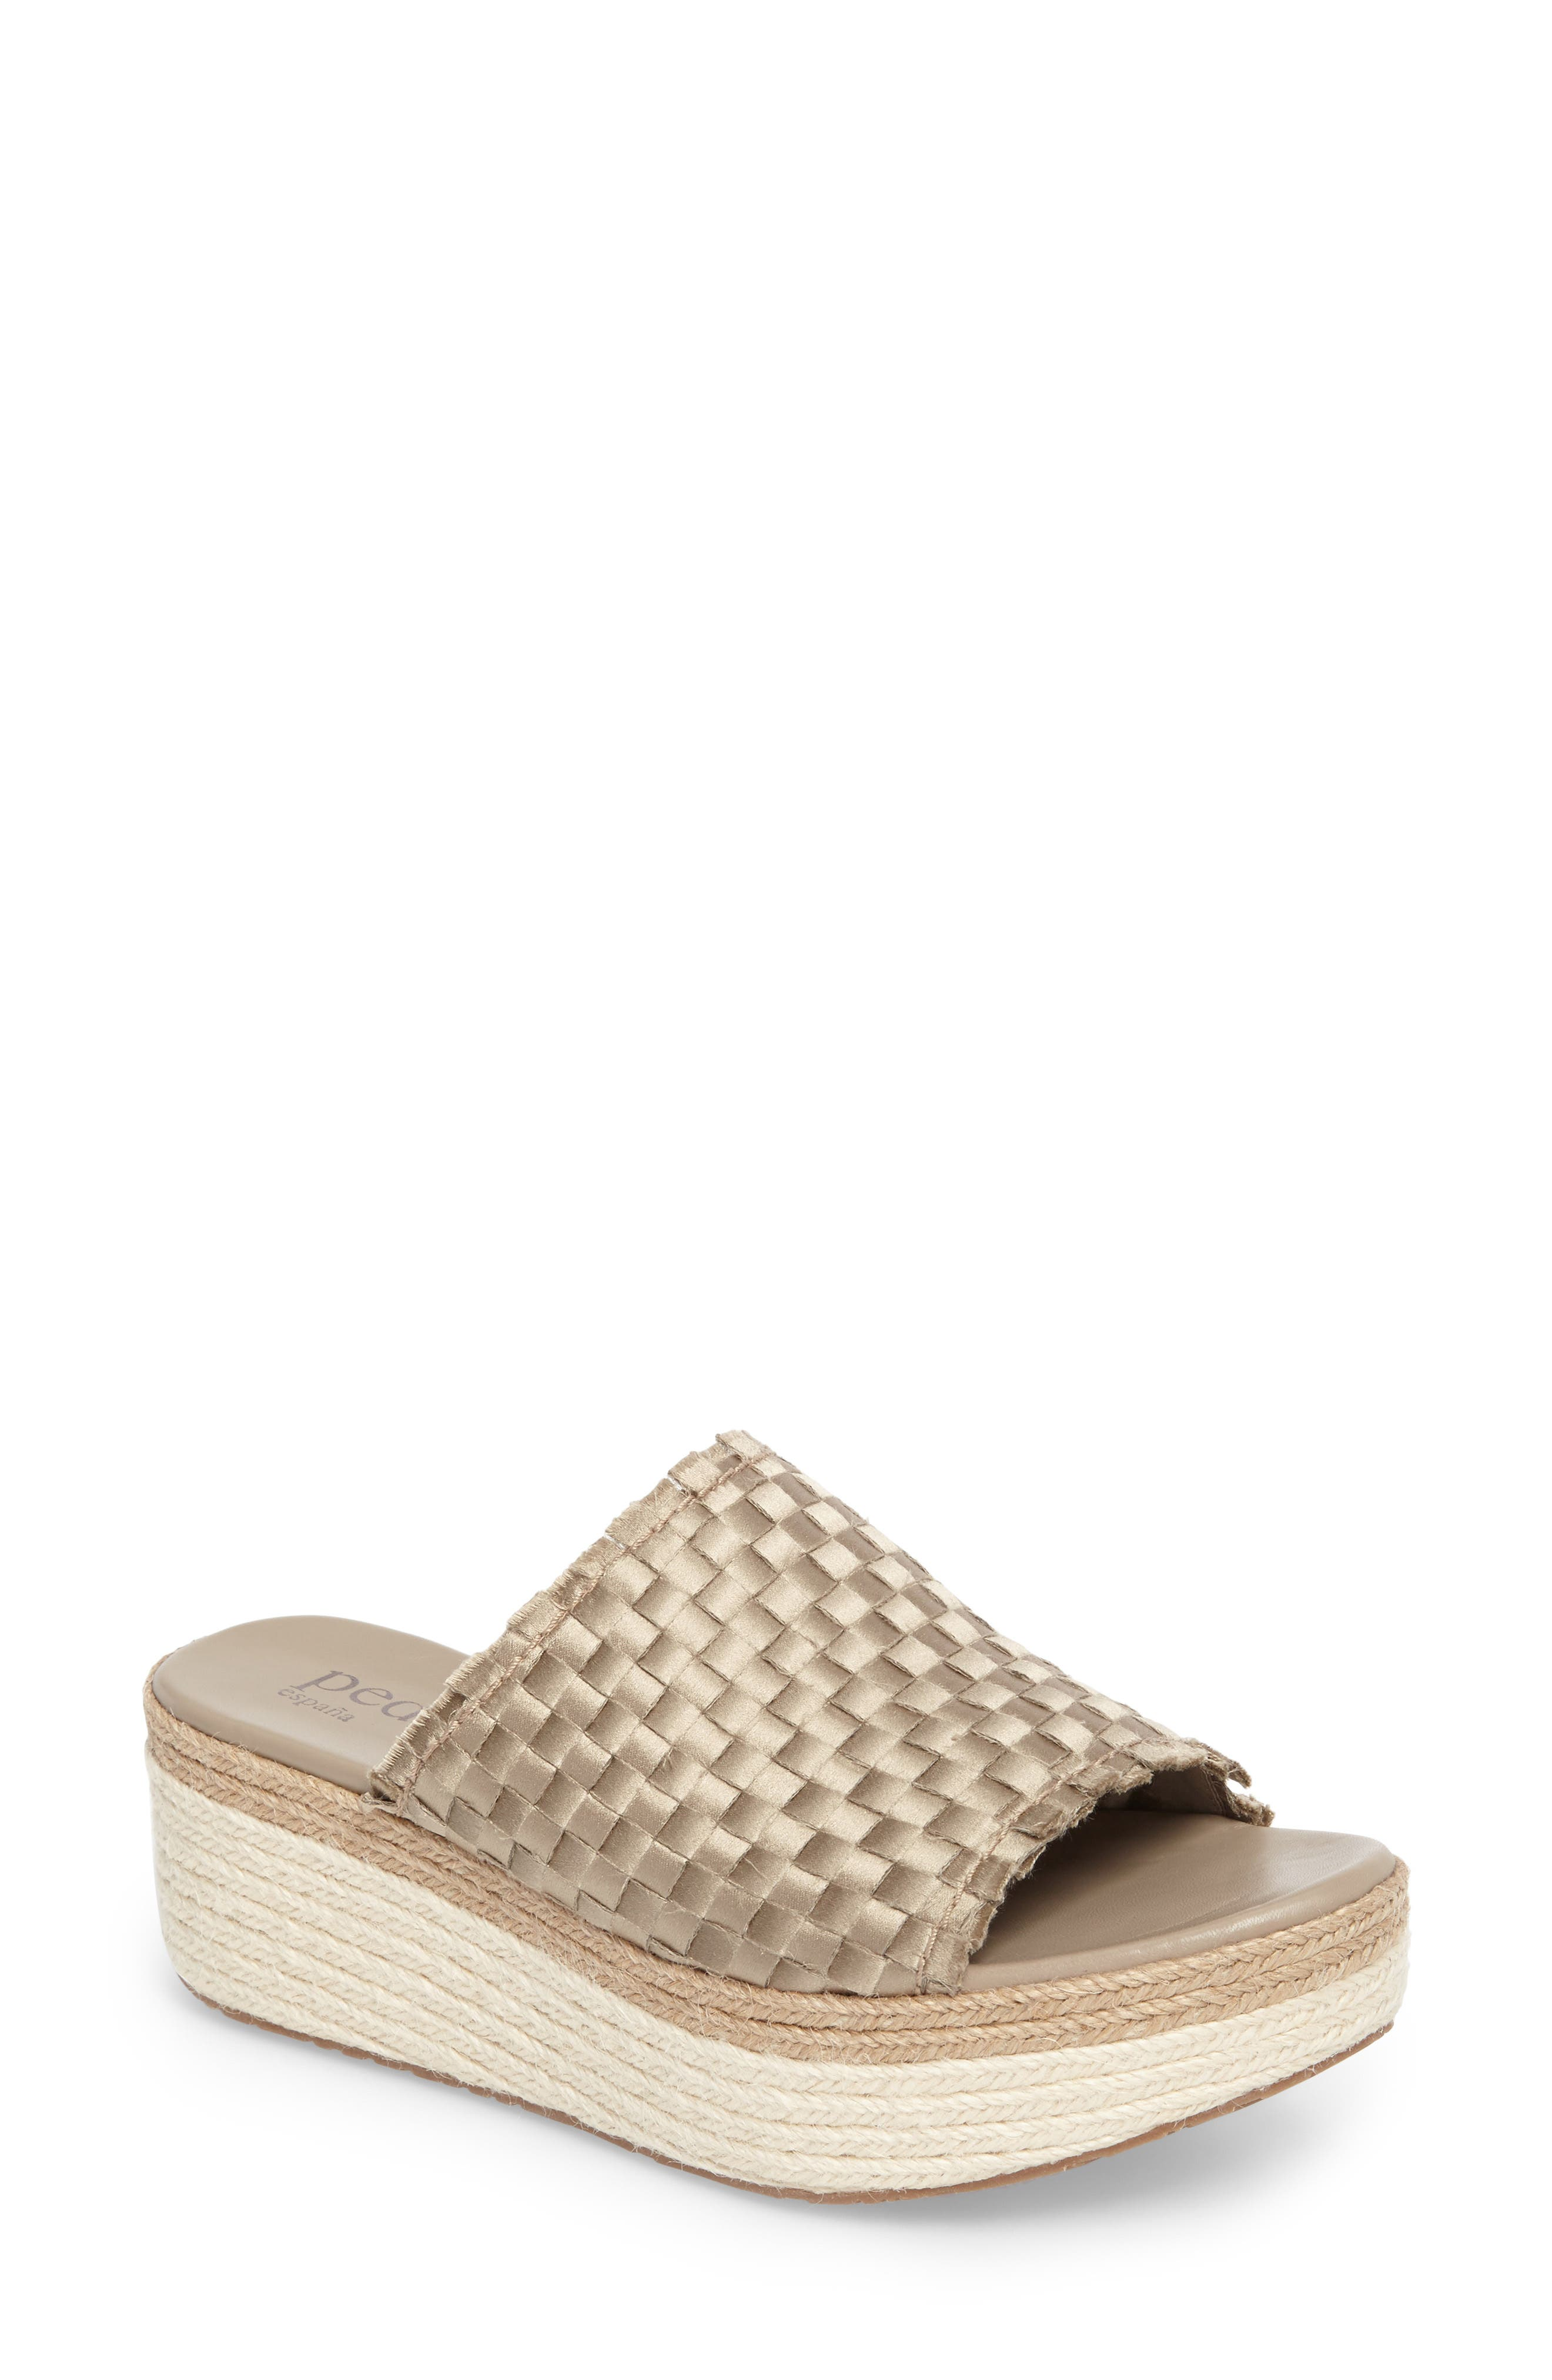 Noema Woven Espadrille Mule,                             Main thumbnail 1, color,                             Twill Satin